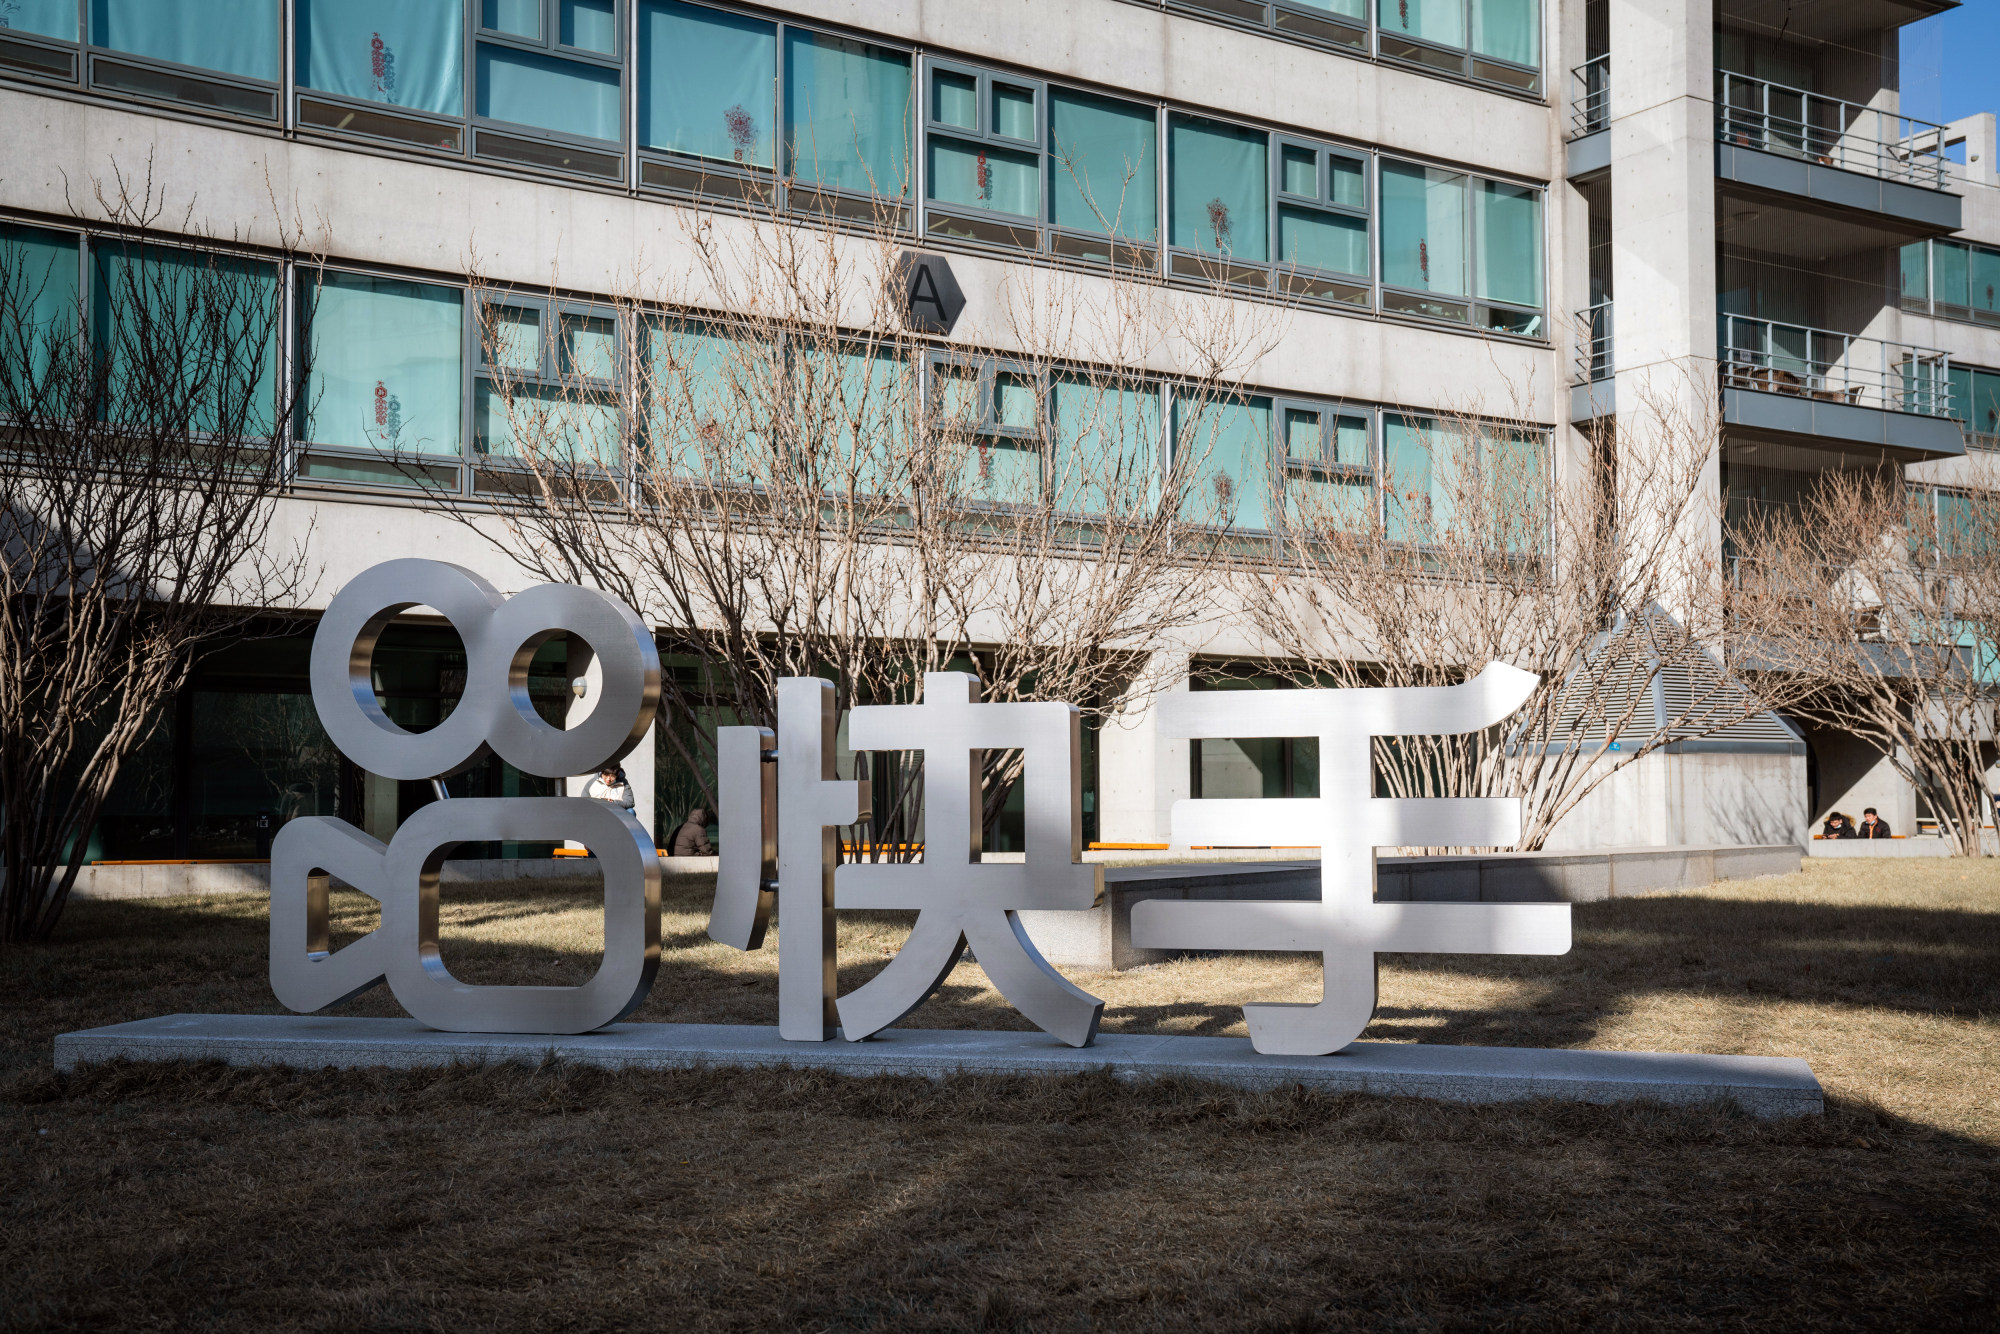 Signage in the courtyard at the Kuaishou Technology headquarters in Beijing, Feb. 3, 2021. Photo: Bloomberg